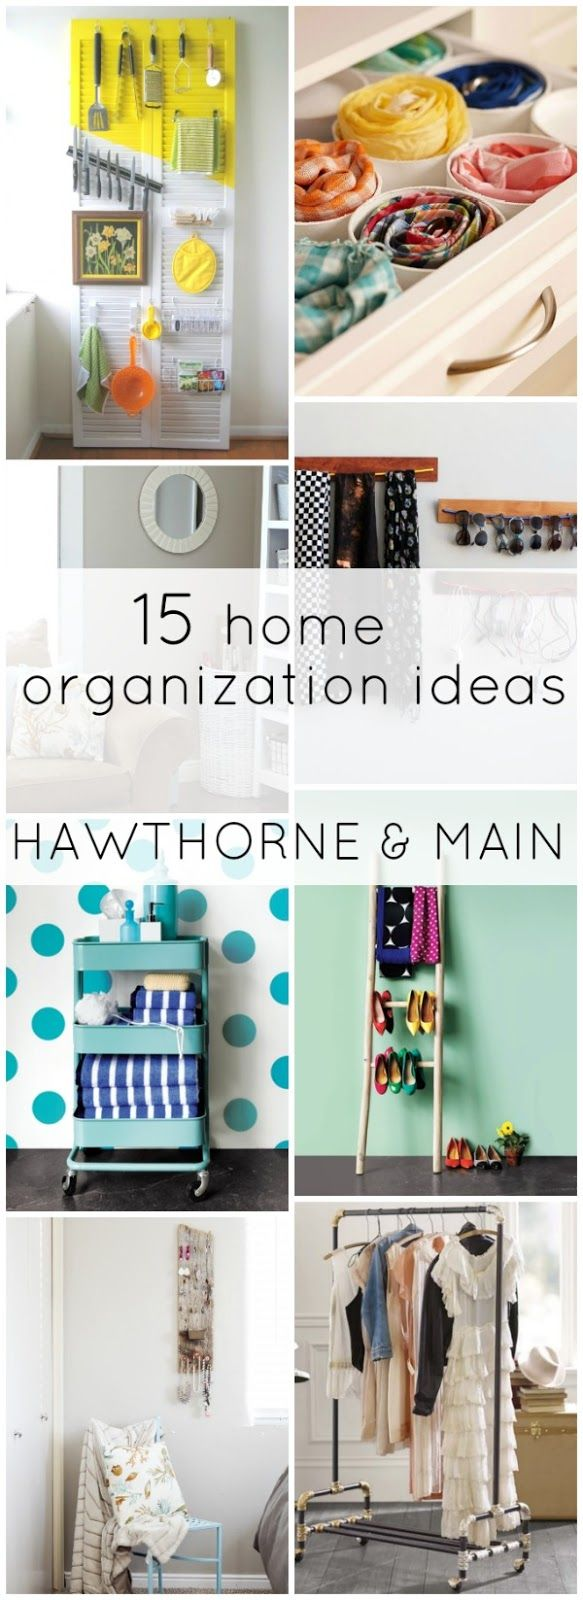 15 Home Organization Ideas | Pinterest | Organization ideas ...